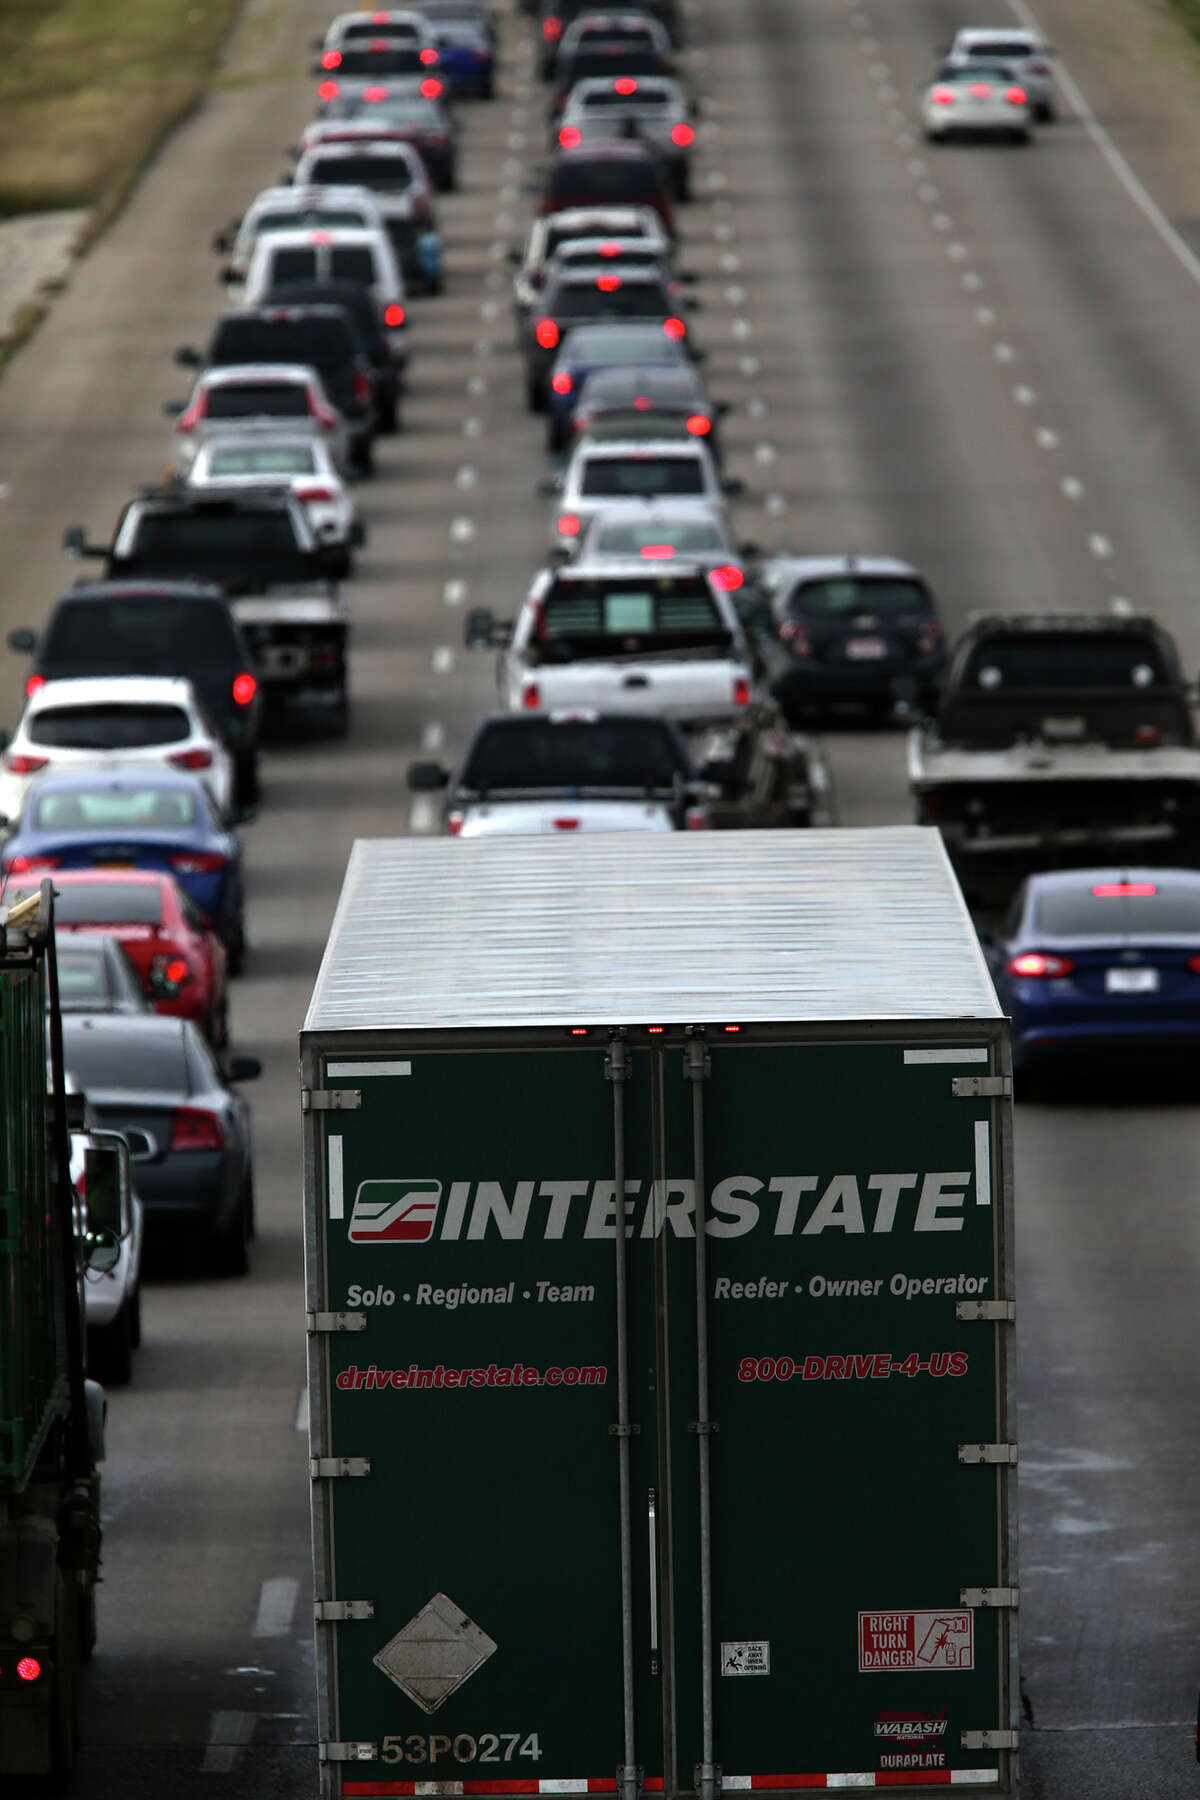 As a part of the Texas Department of Transportation congestion relief initiative, San Antonio could get added funds for two projects, including $90.1 million toward building an interchange at Loop 410 and U.S. 90. Traffic typically backs up on 410 during rush hour in the morning and evening.